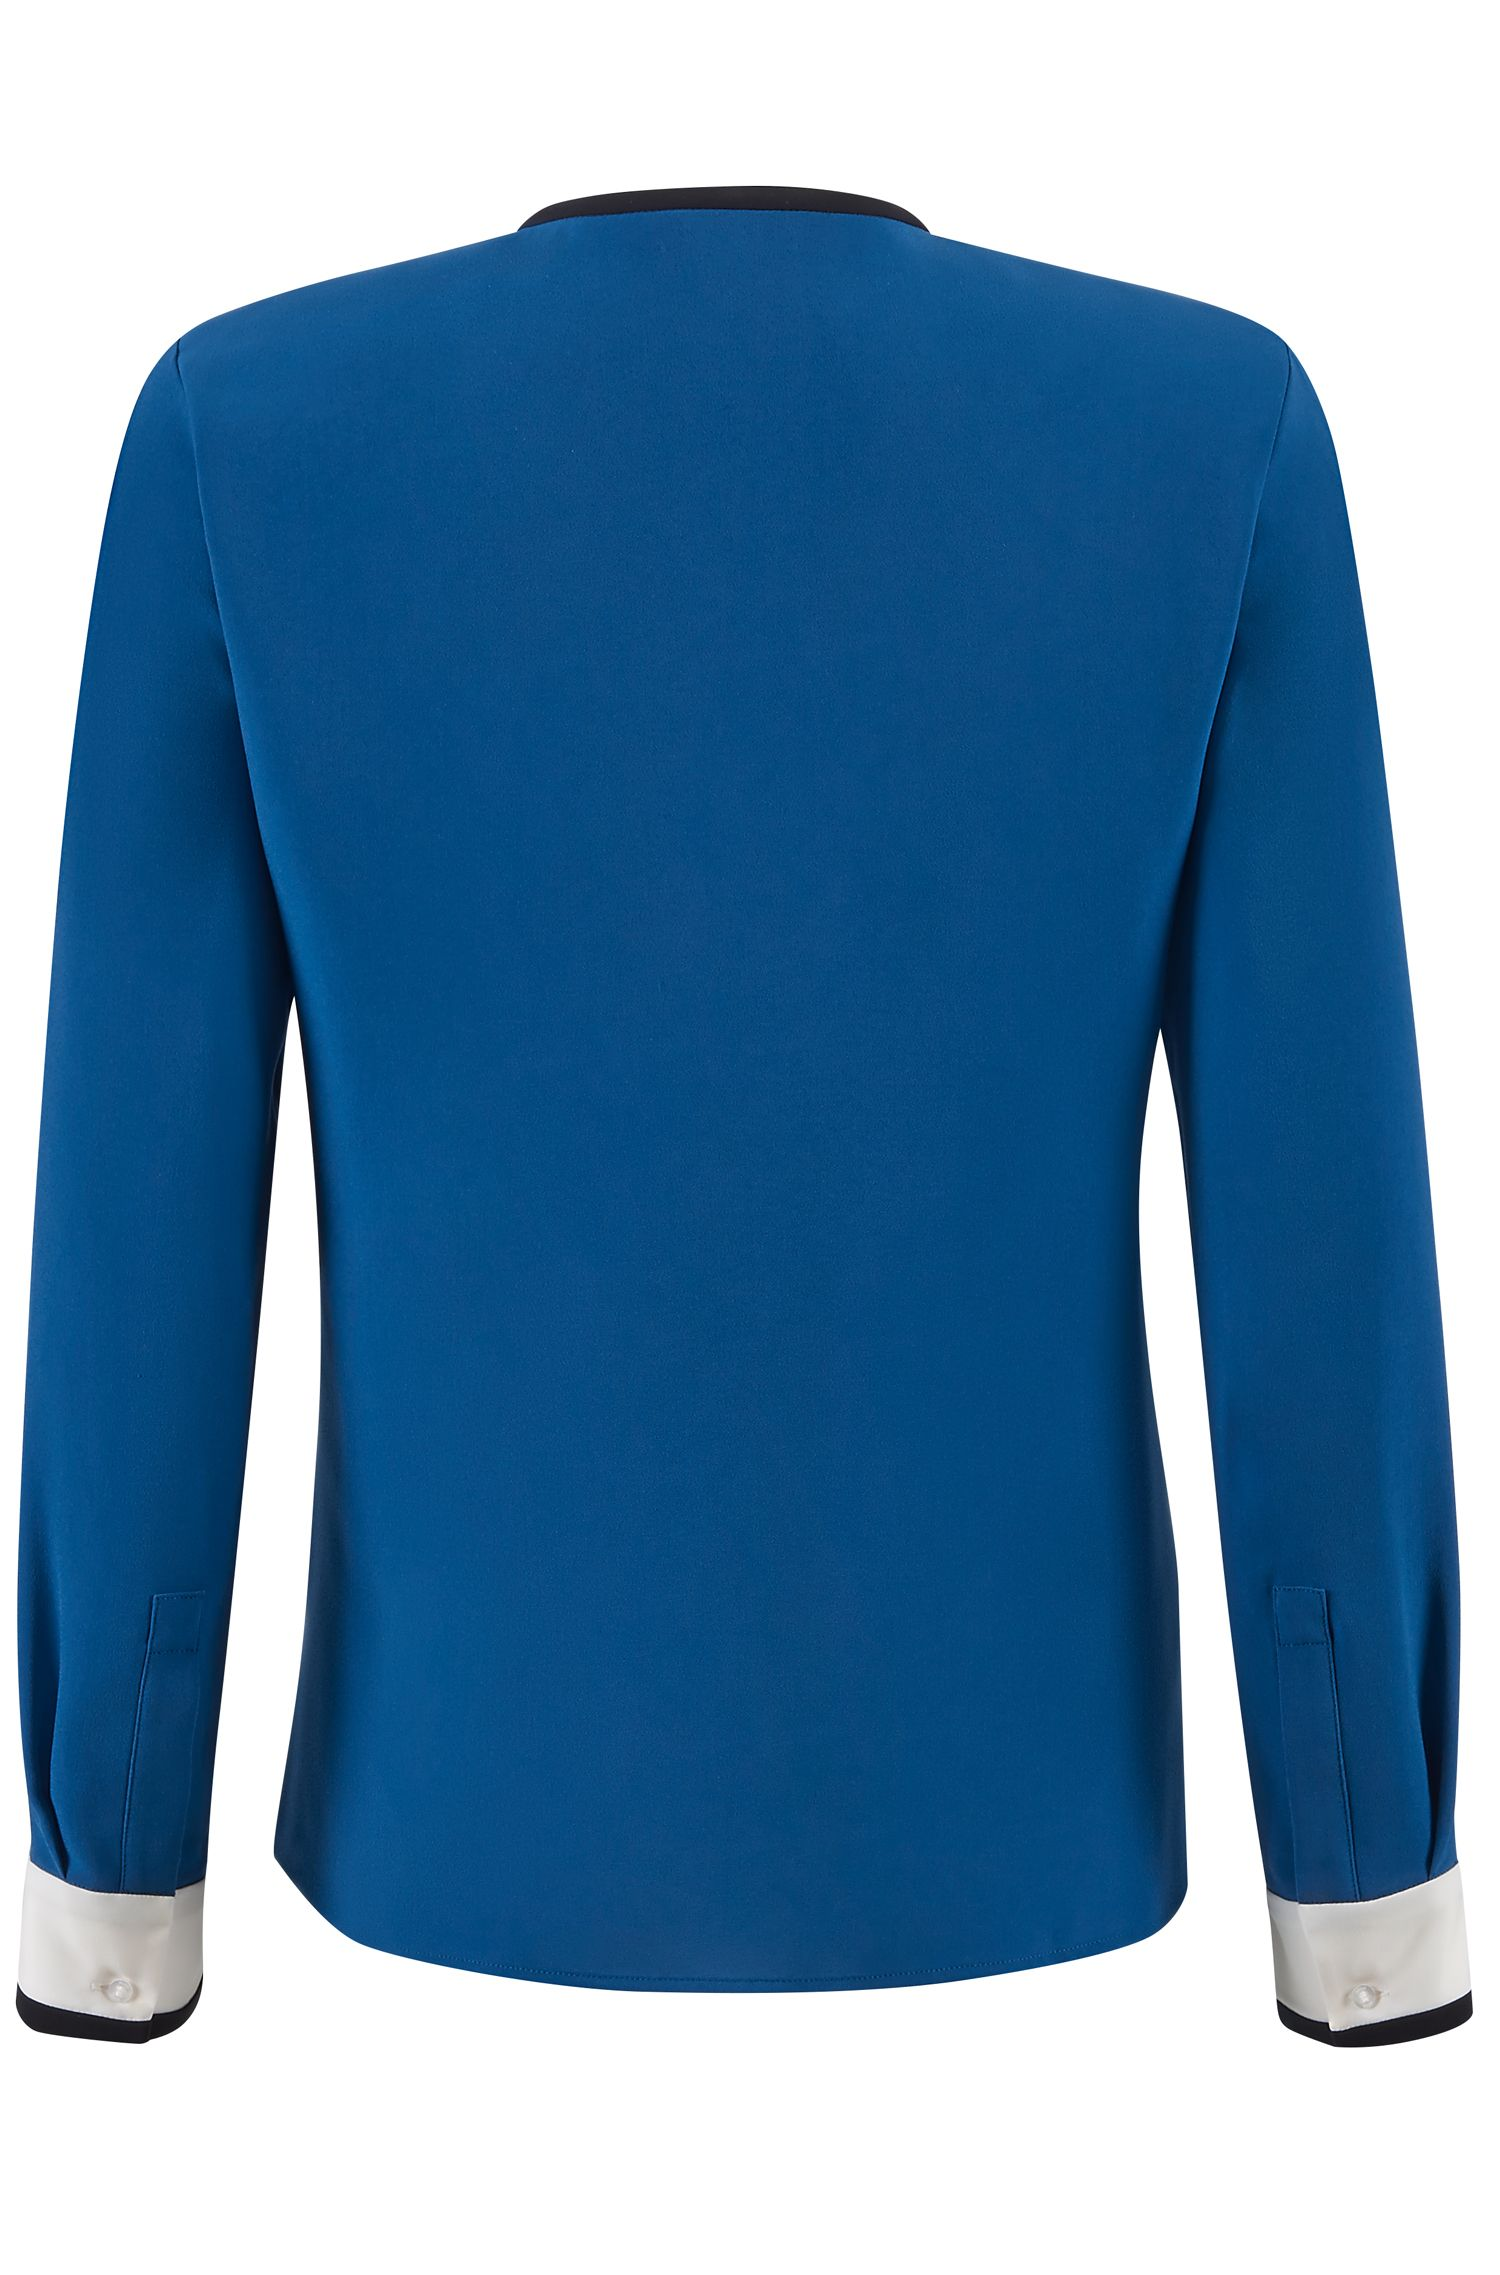 Colorblocked Top | Isolani, Blue